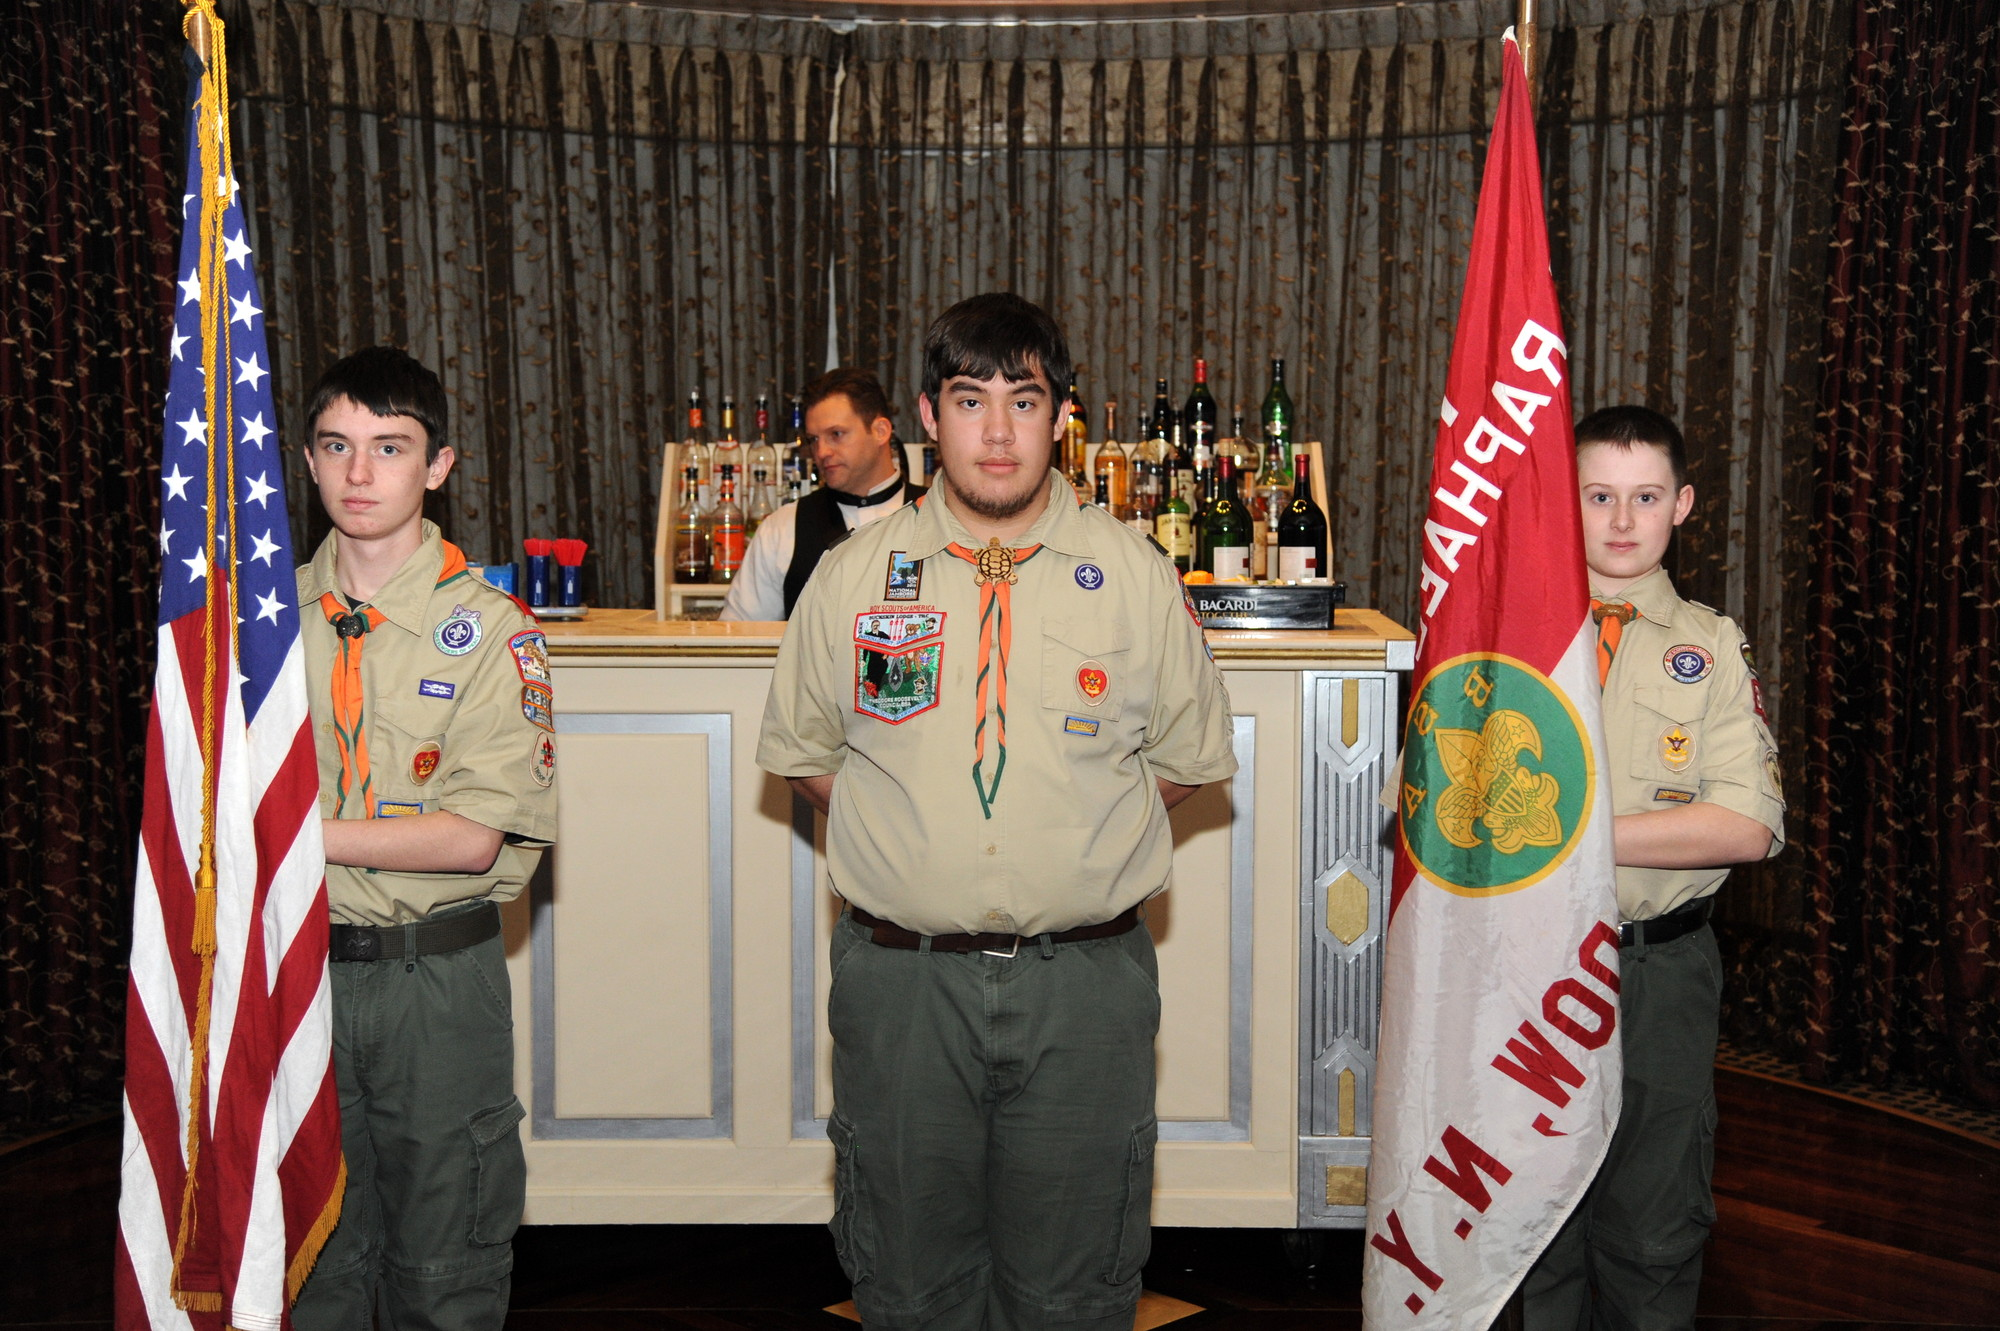 Thomas Ferrone, left, Patrick Hart, Jack Doughty of East Meadow Boy Scout Troop 362 led the Color Guard at the beginning of the East Meadow Chamber of Commerce's 59th Annual Installation of Officers and Board of Directors on Jan. 24 at the Chateau Briand in Carle Place.